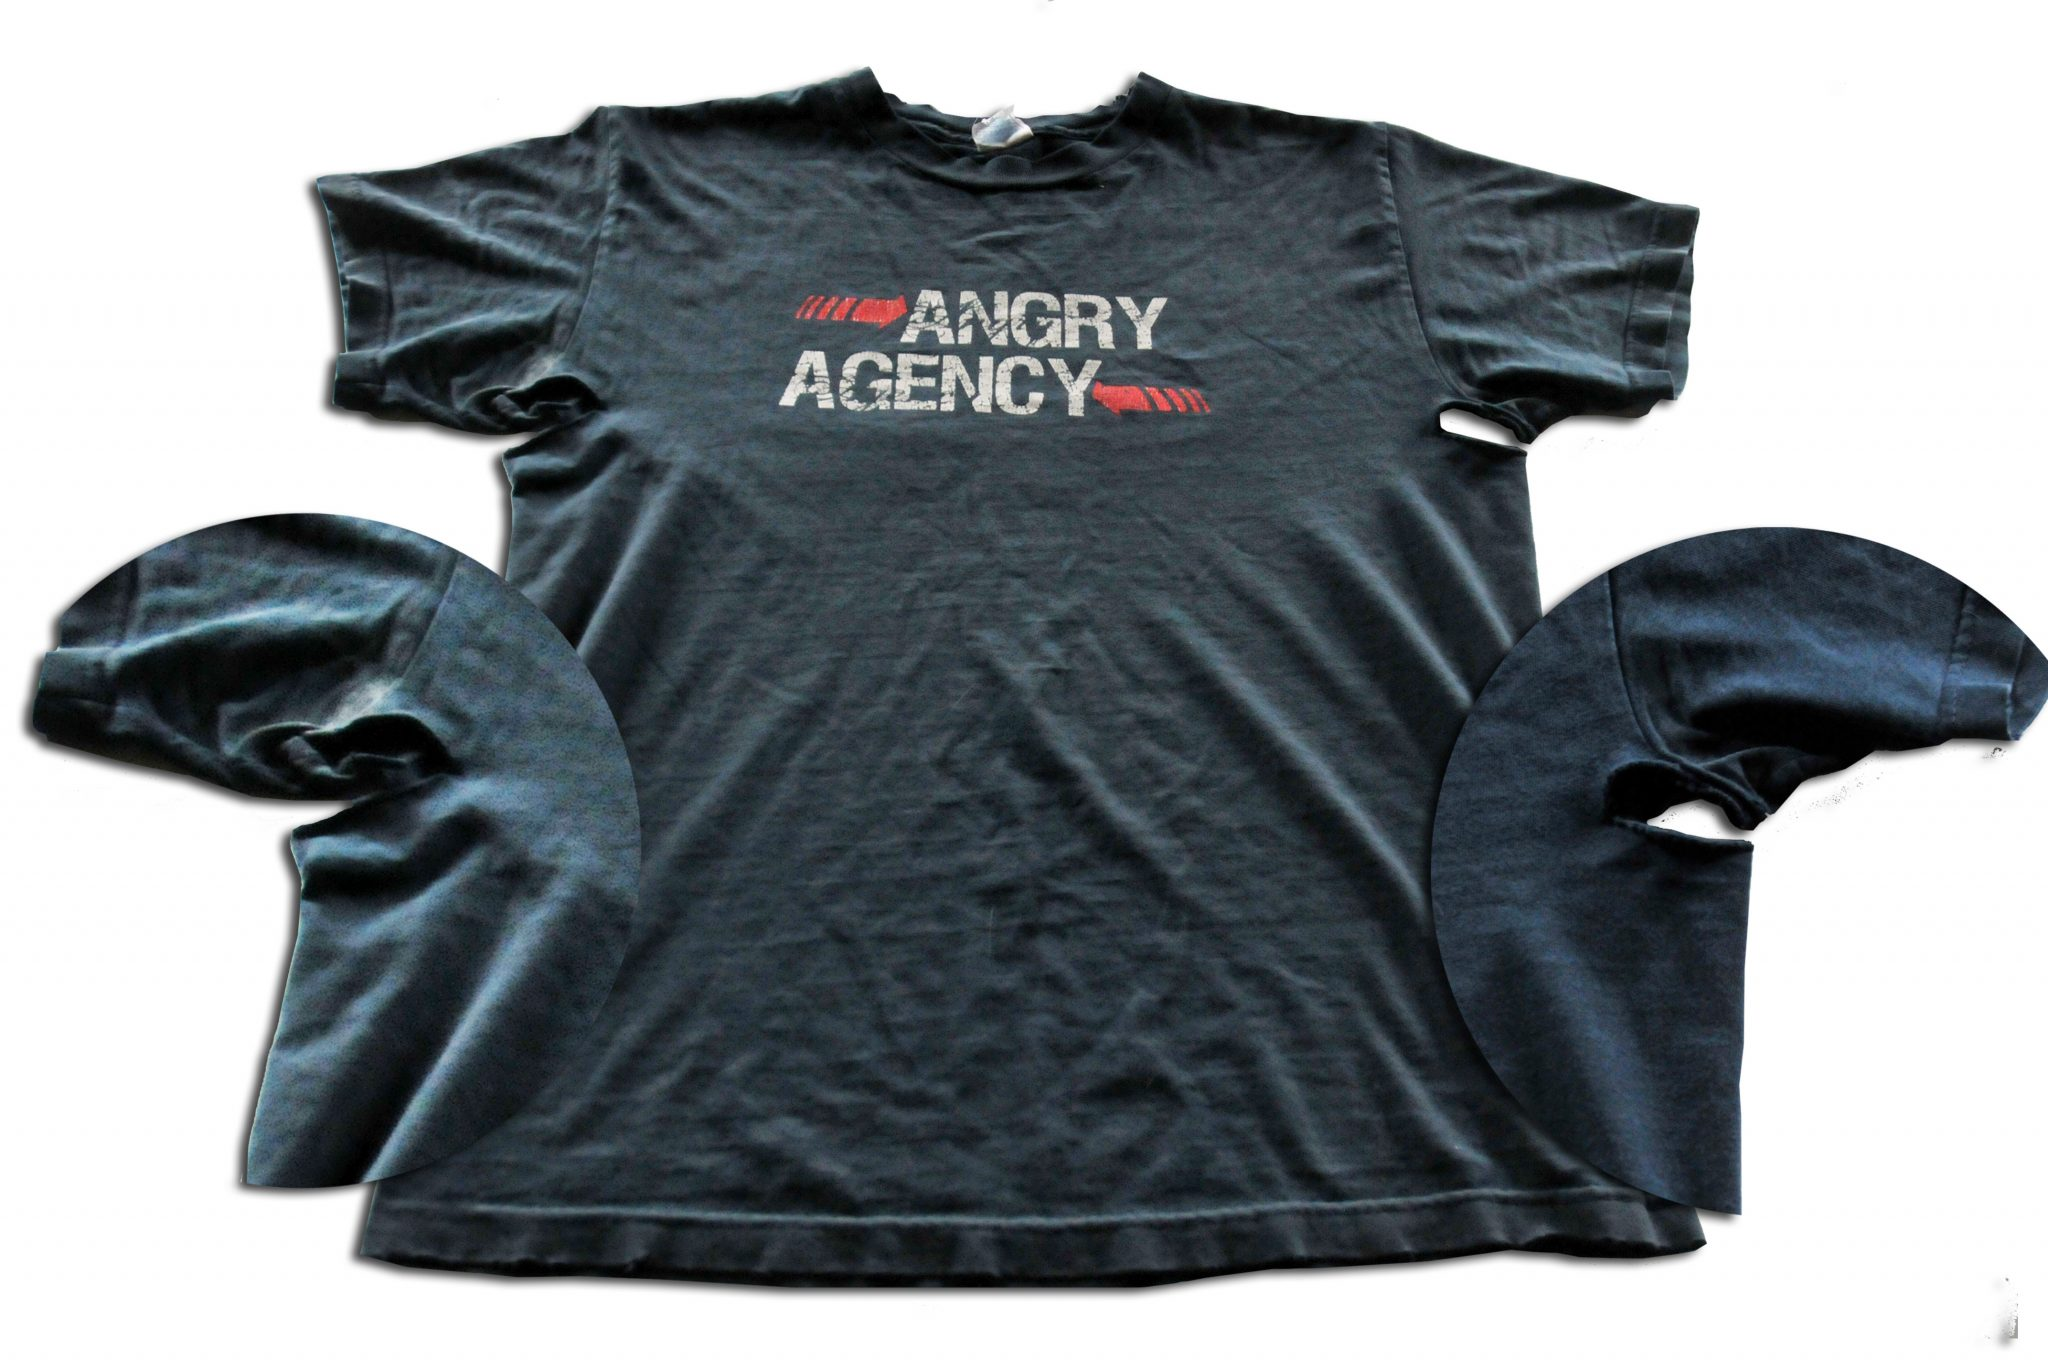 I'm not so much angry as I am disappointed that my Angry Agency shirt is literally falling apart.